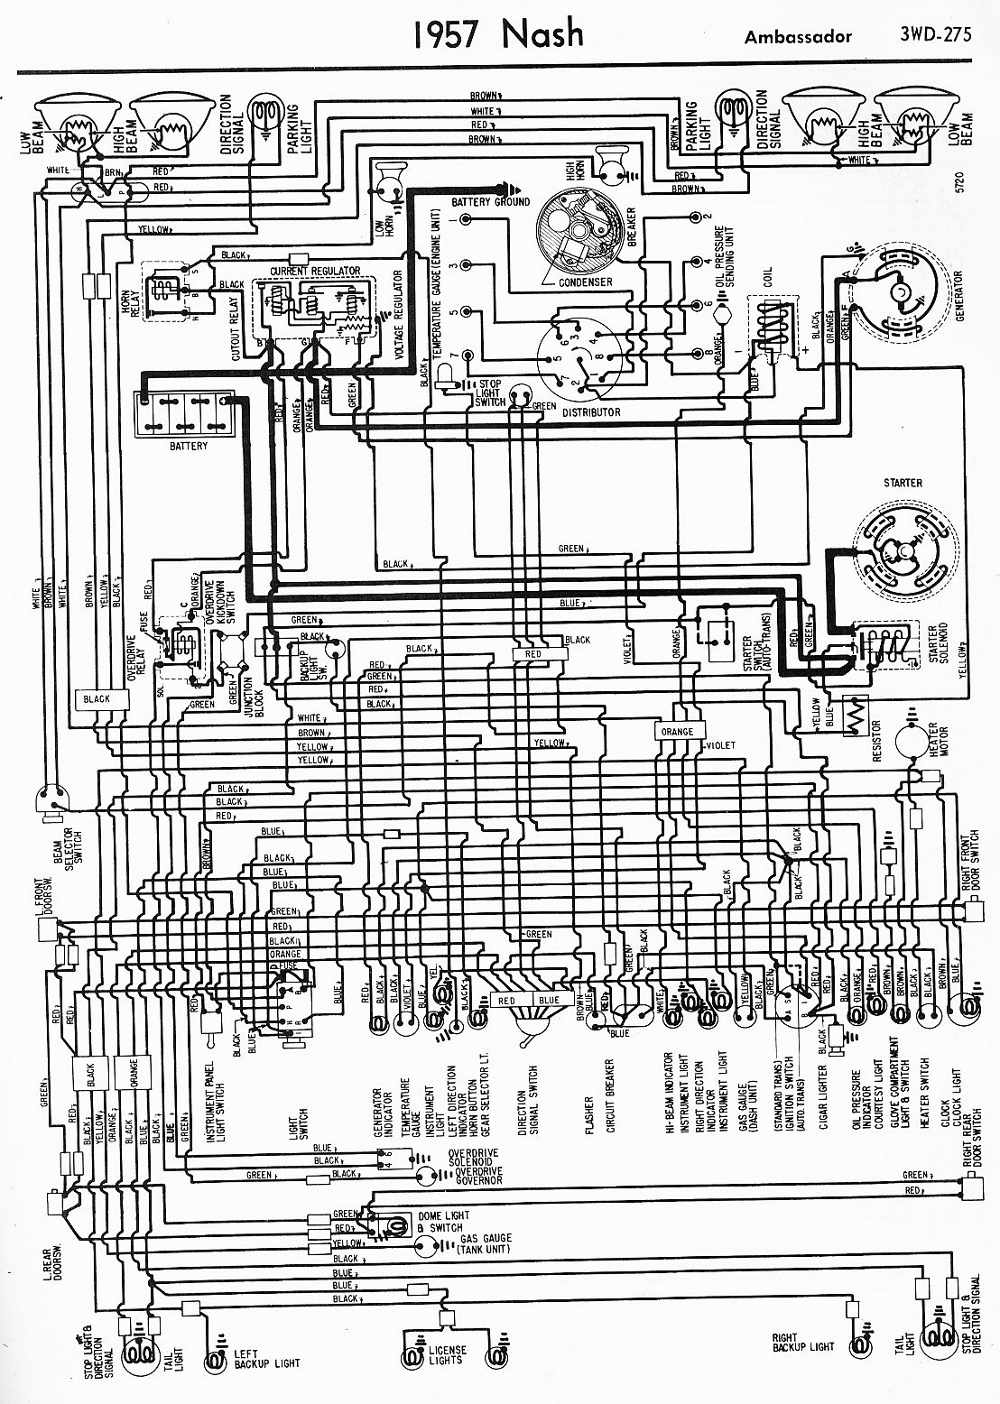 medium resolution of wiring diagram for 1950 nash wiring diagram name nash trailer wiring diagram